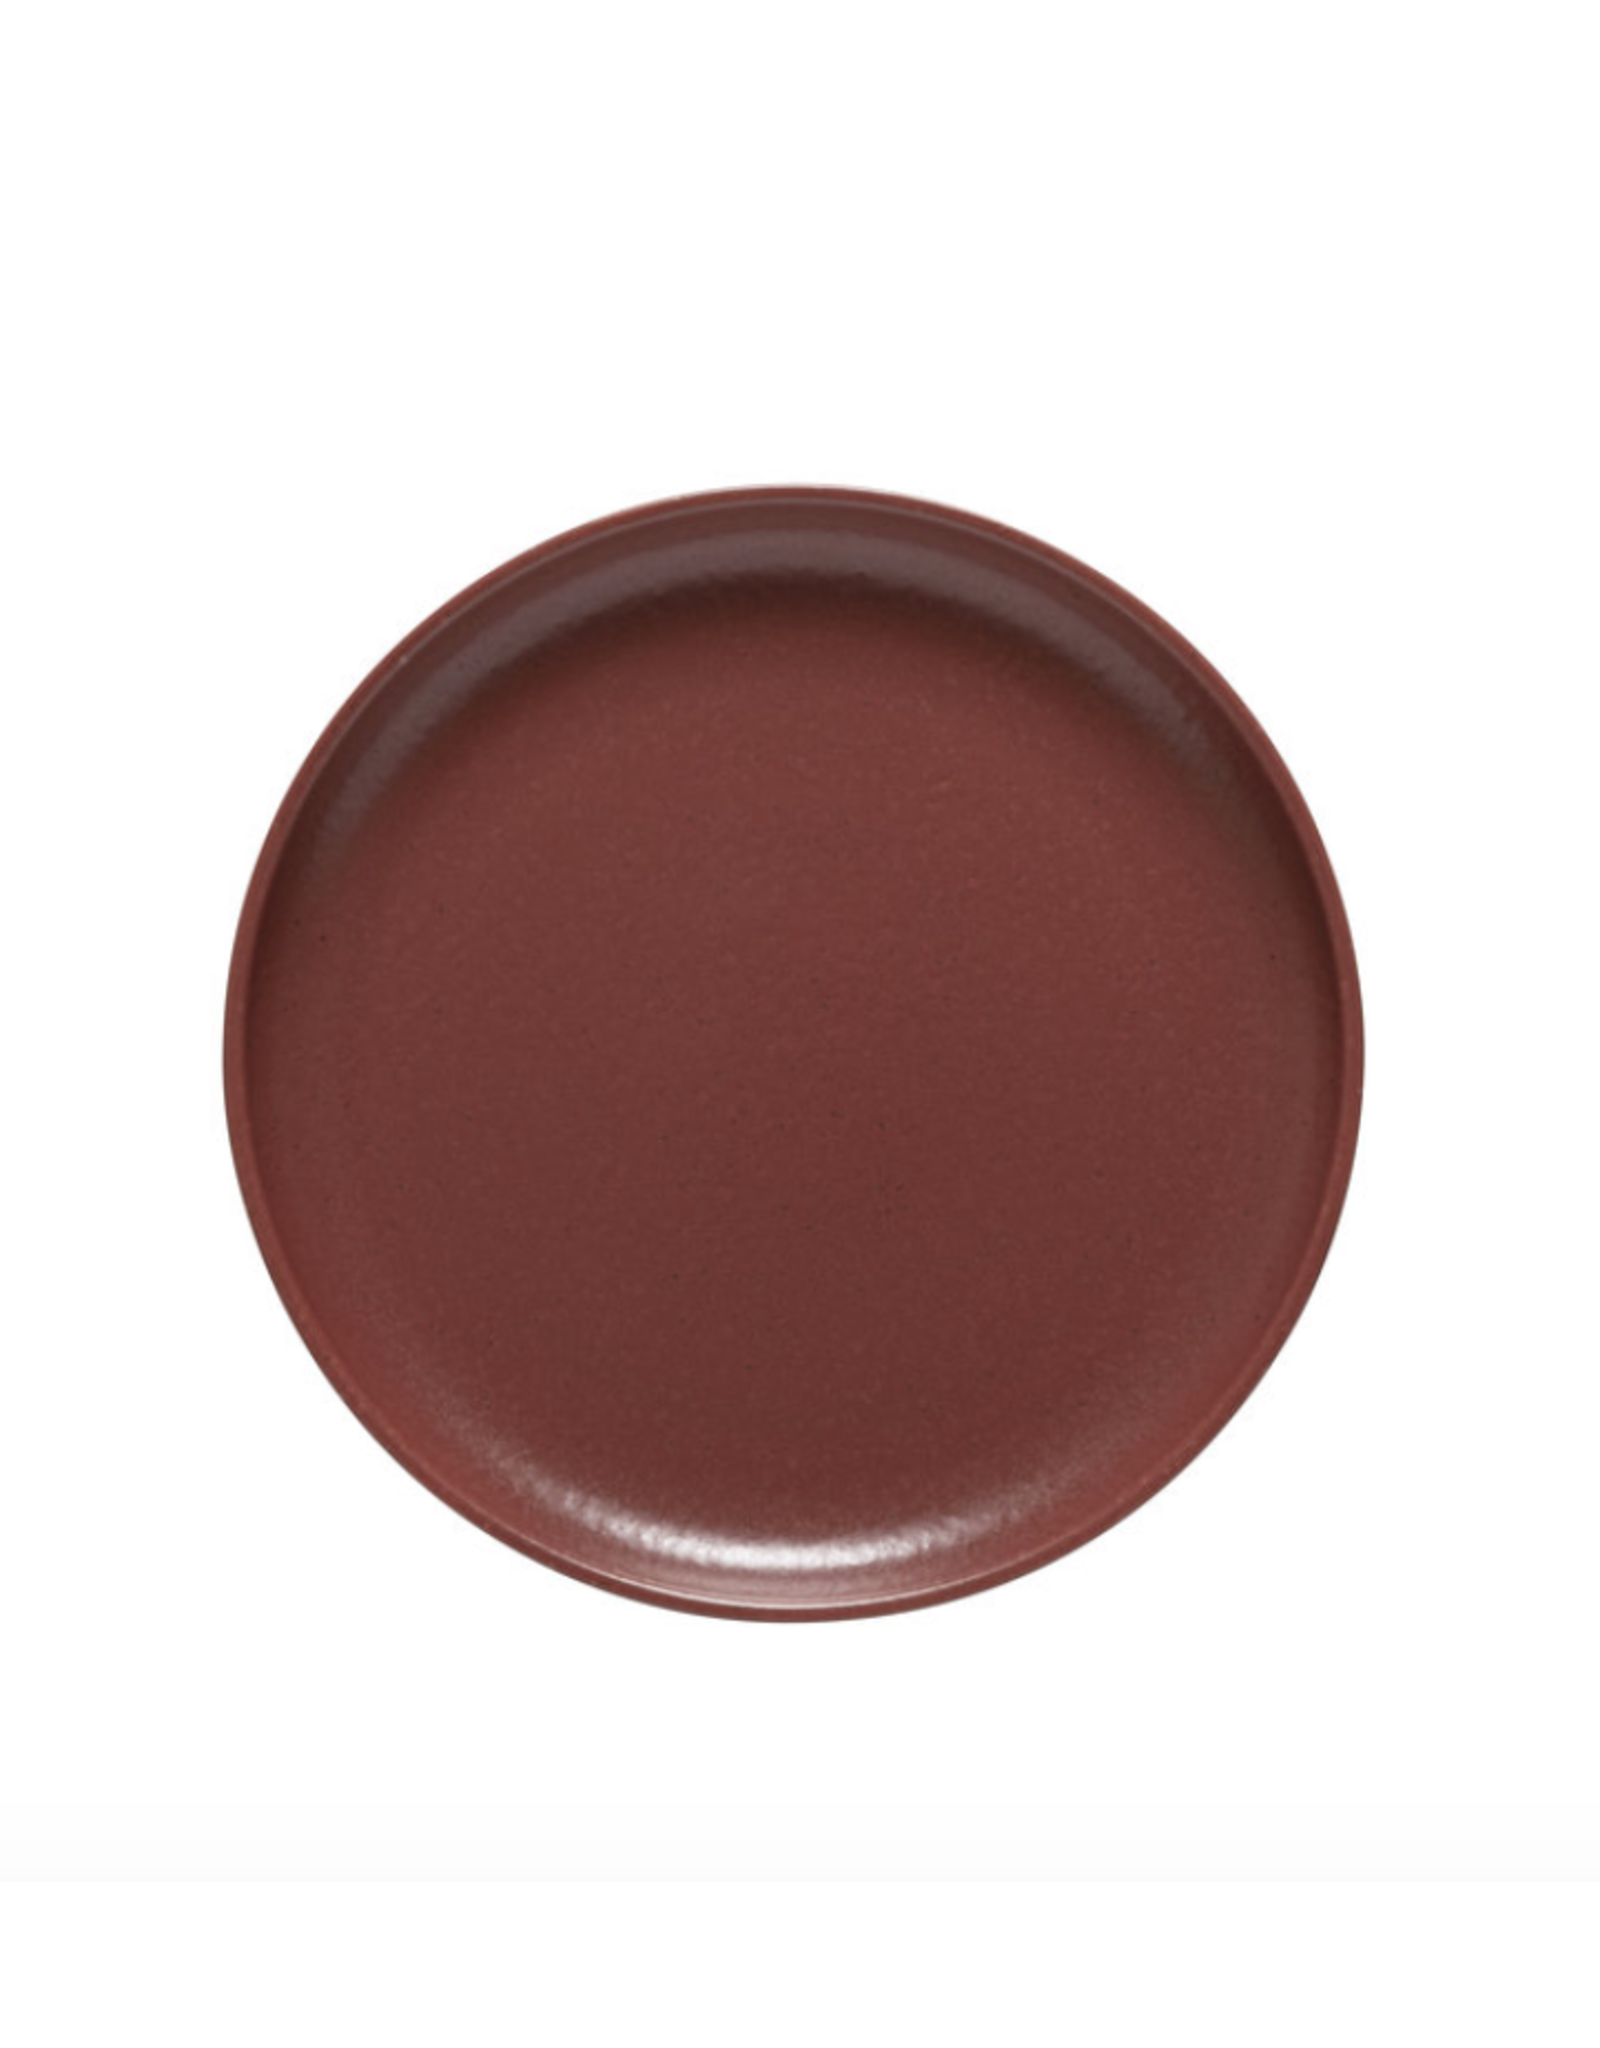 Kitchen Trend Ontbijtbord 23cm Pacifica rood